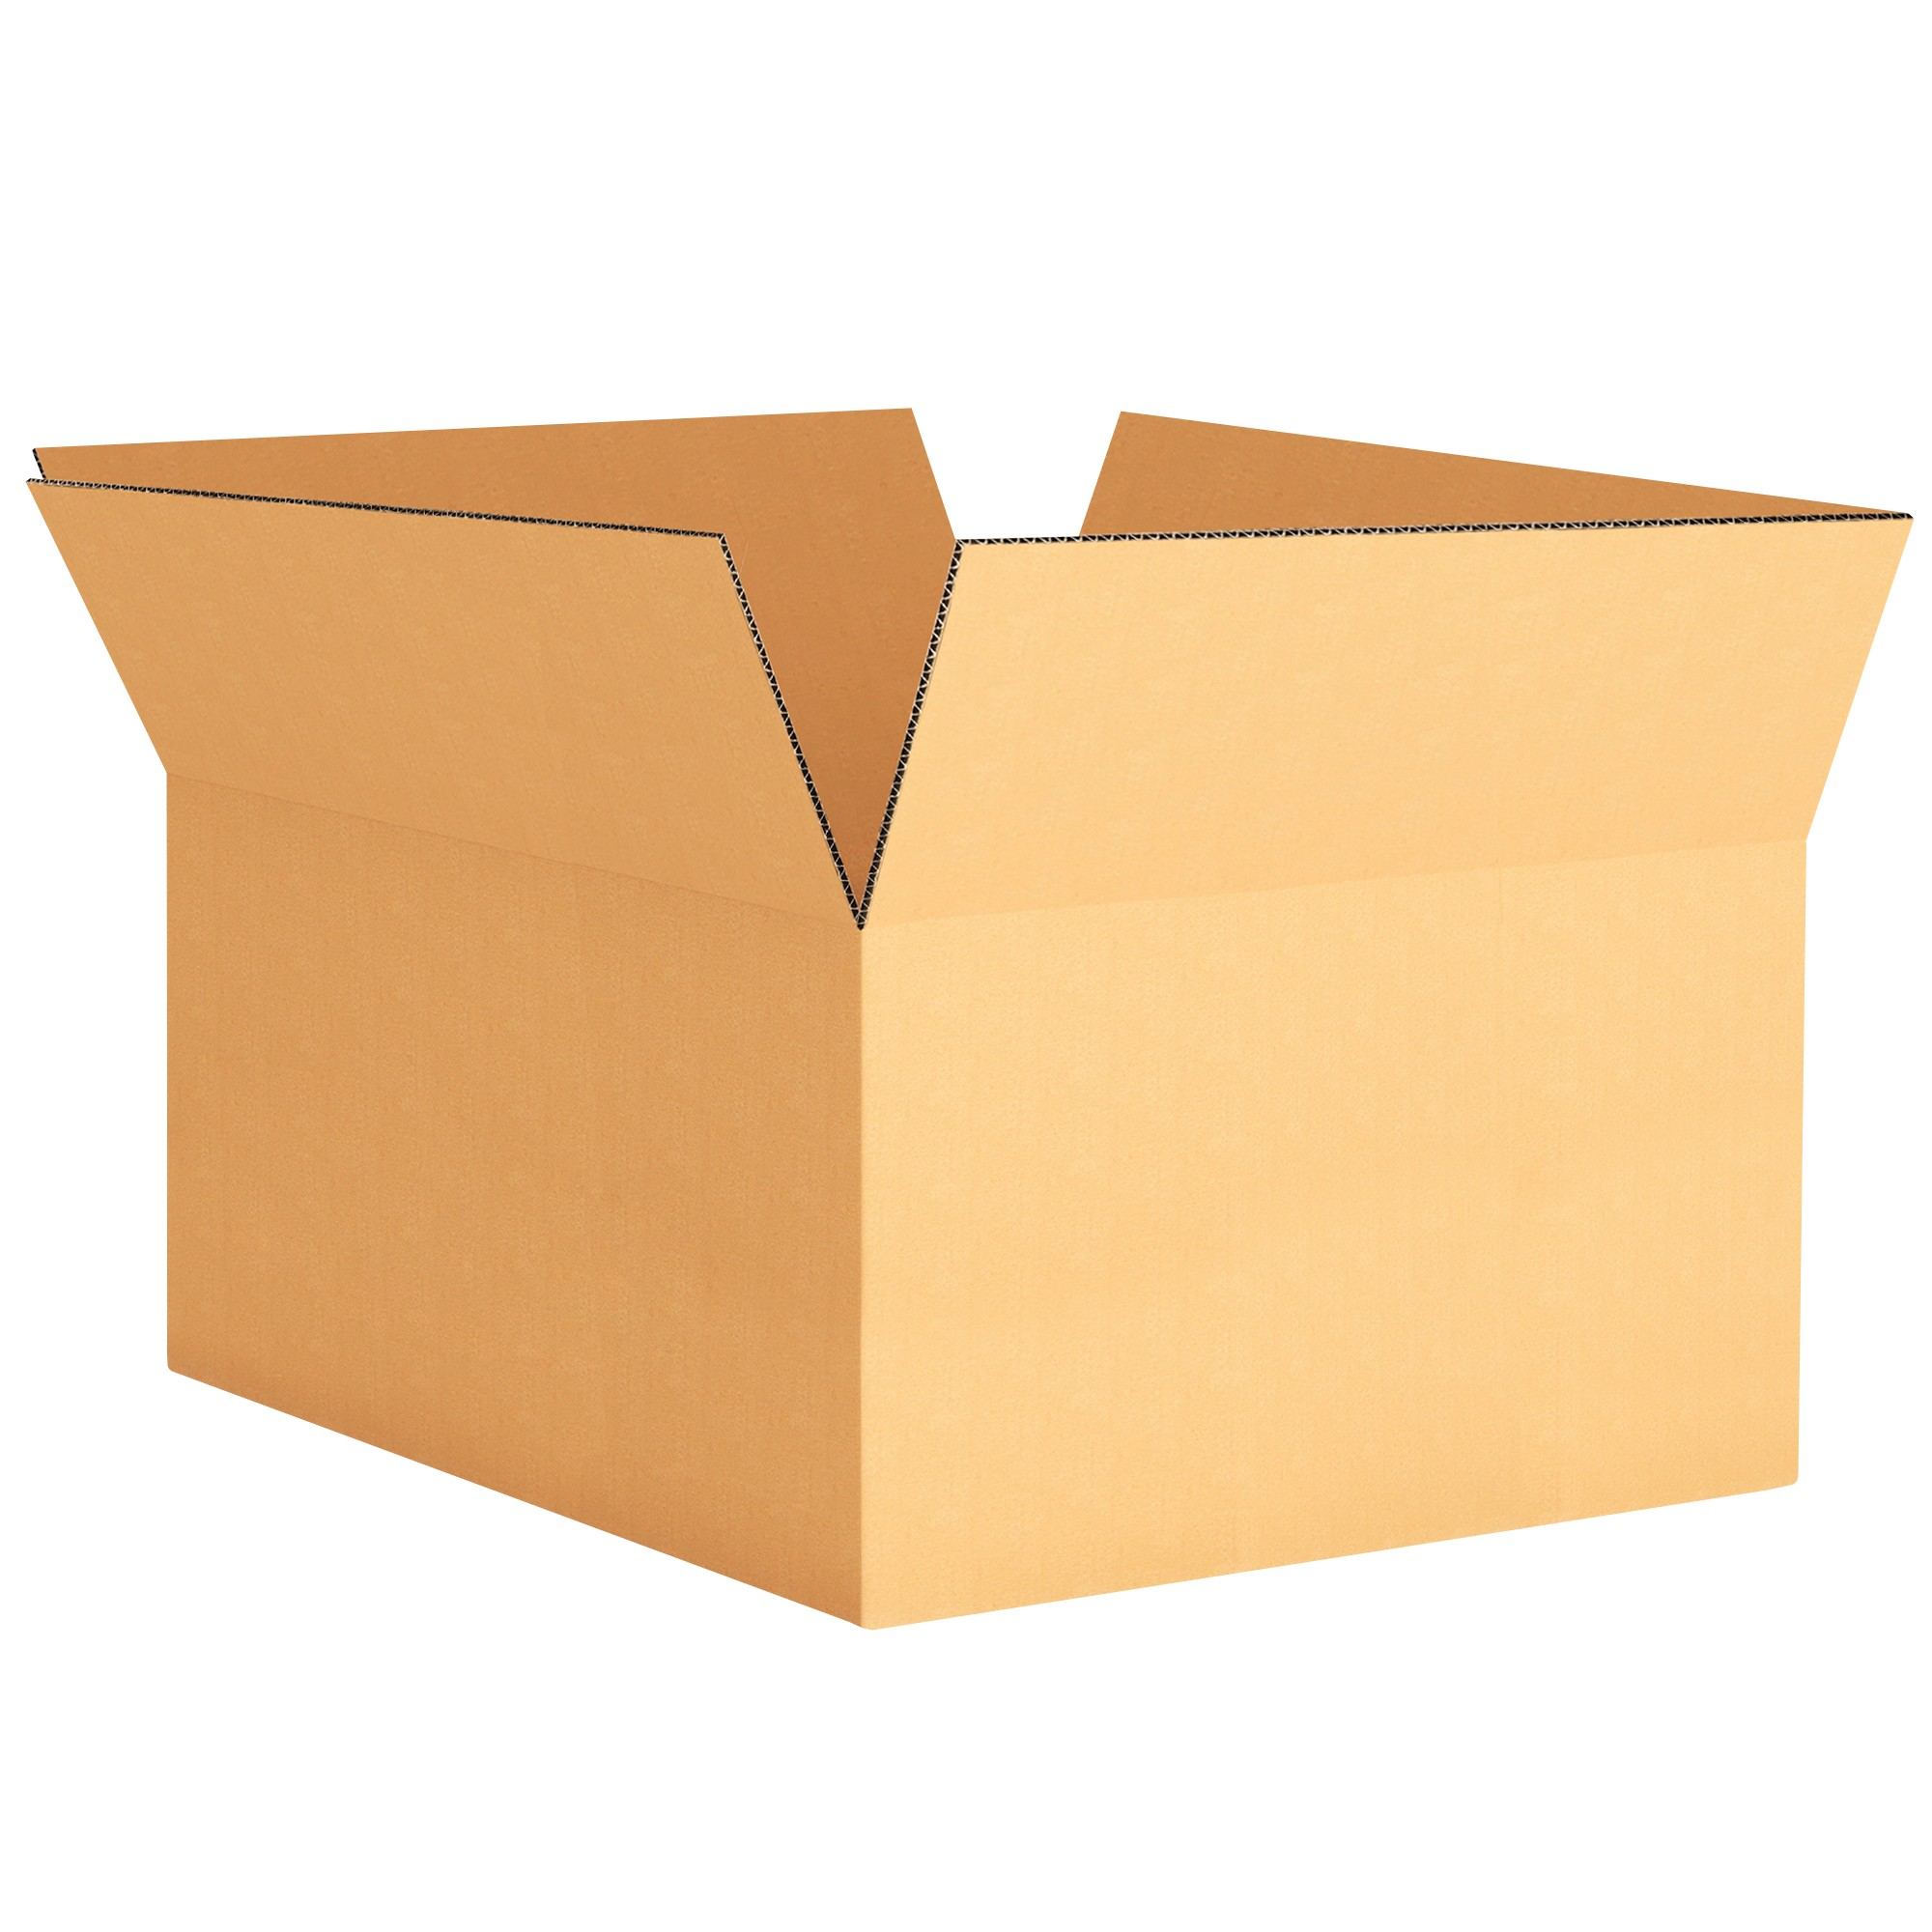 """TOTALPACK® 16 x 13 x 8"""" Single Wall Corrugated Boxes """"#3"""" 25 Units"""